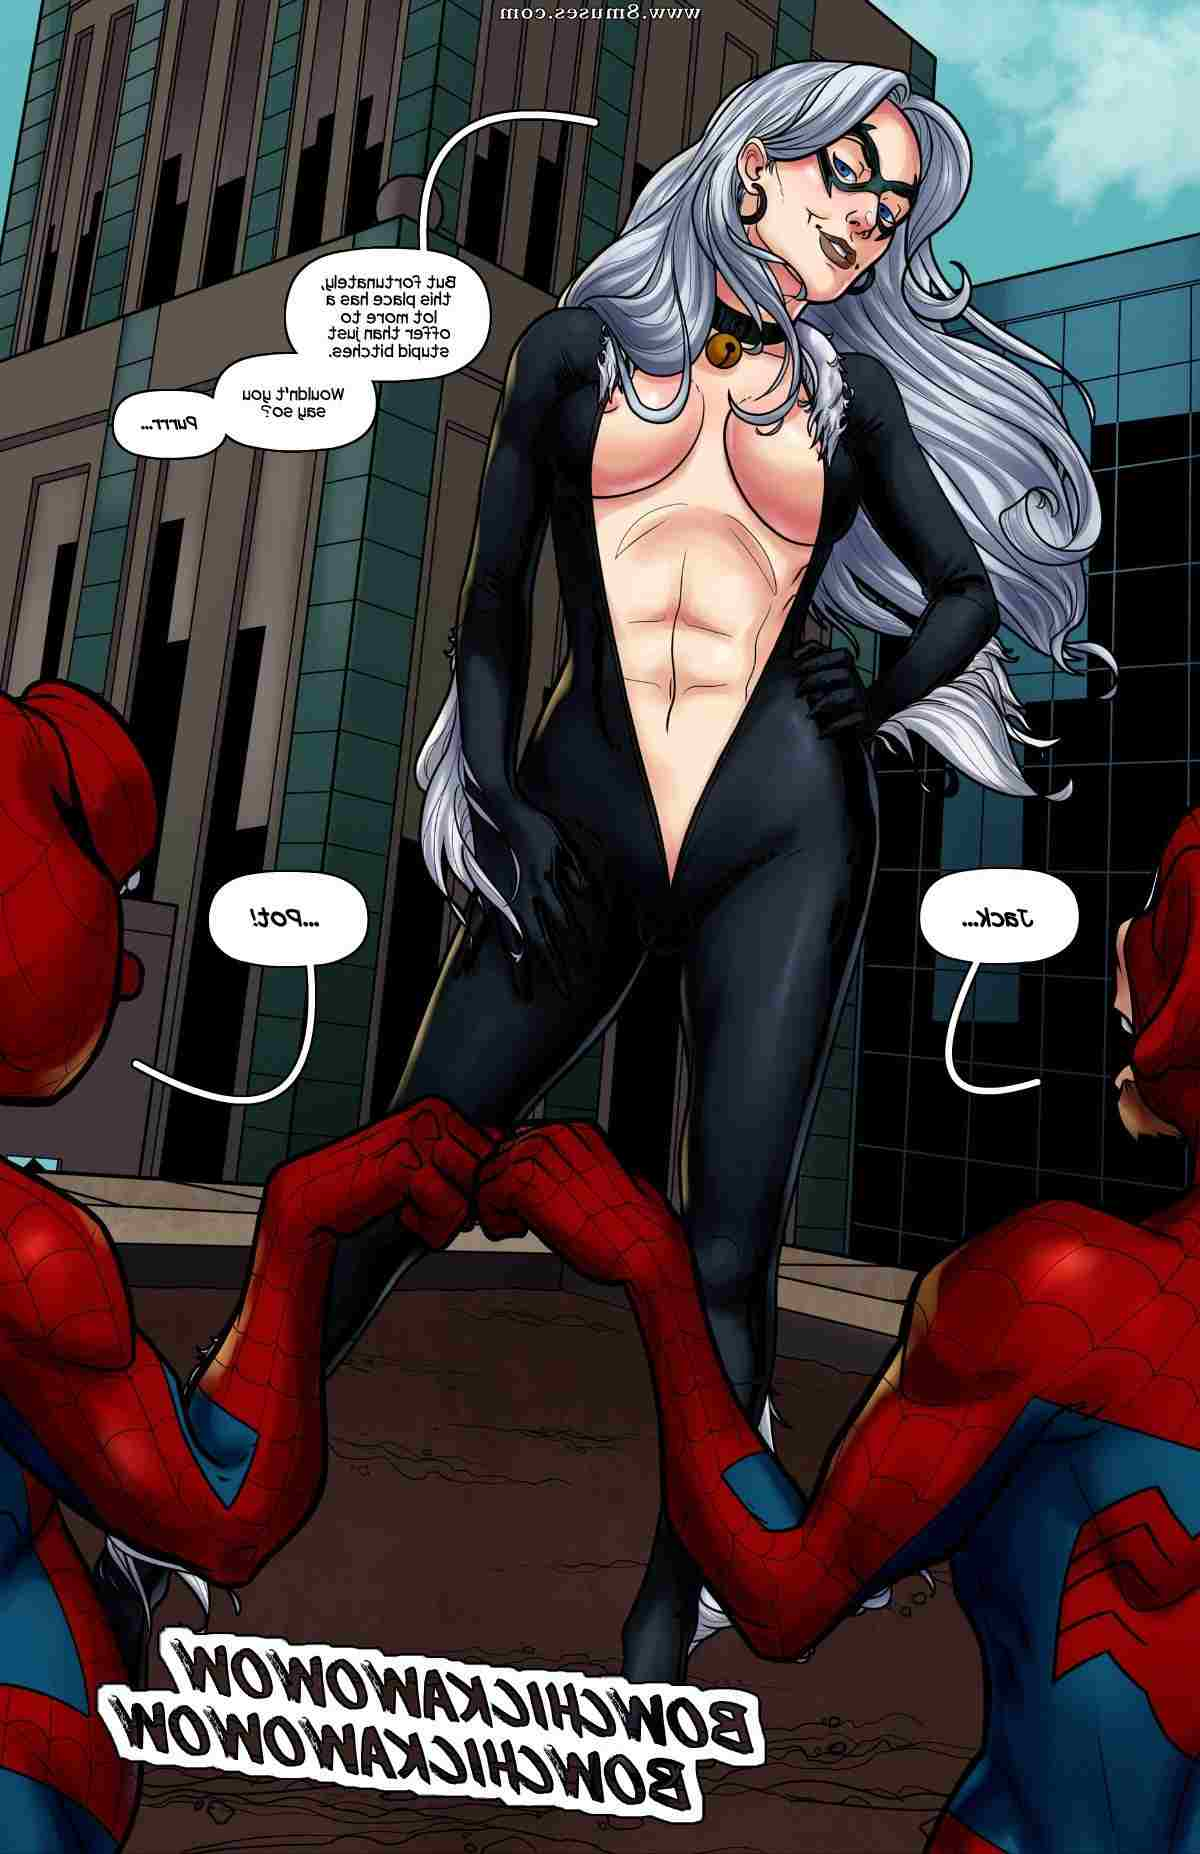 Tracy-Scops-Comics/Raiders-of-the-Sexverse Raiders_of_the_Sexverse__8muses_-_Sex_and_Porn_Comics_9.jpg